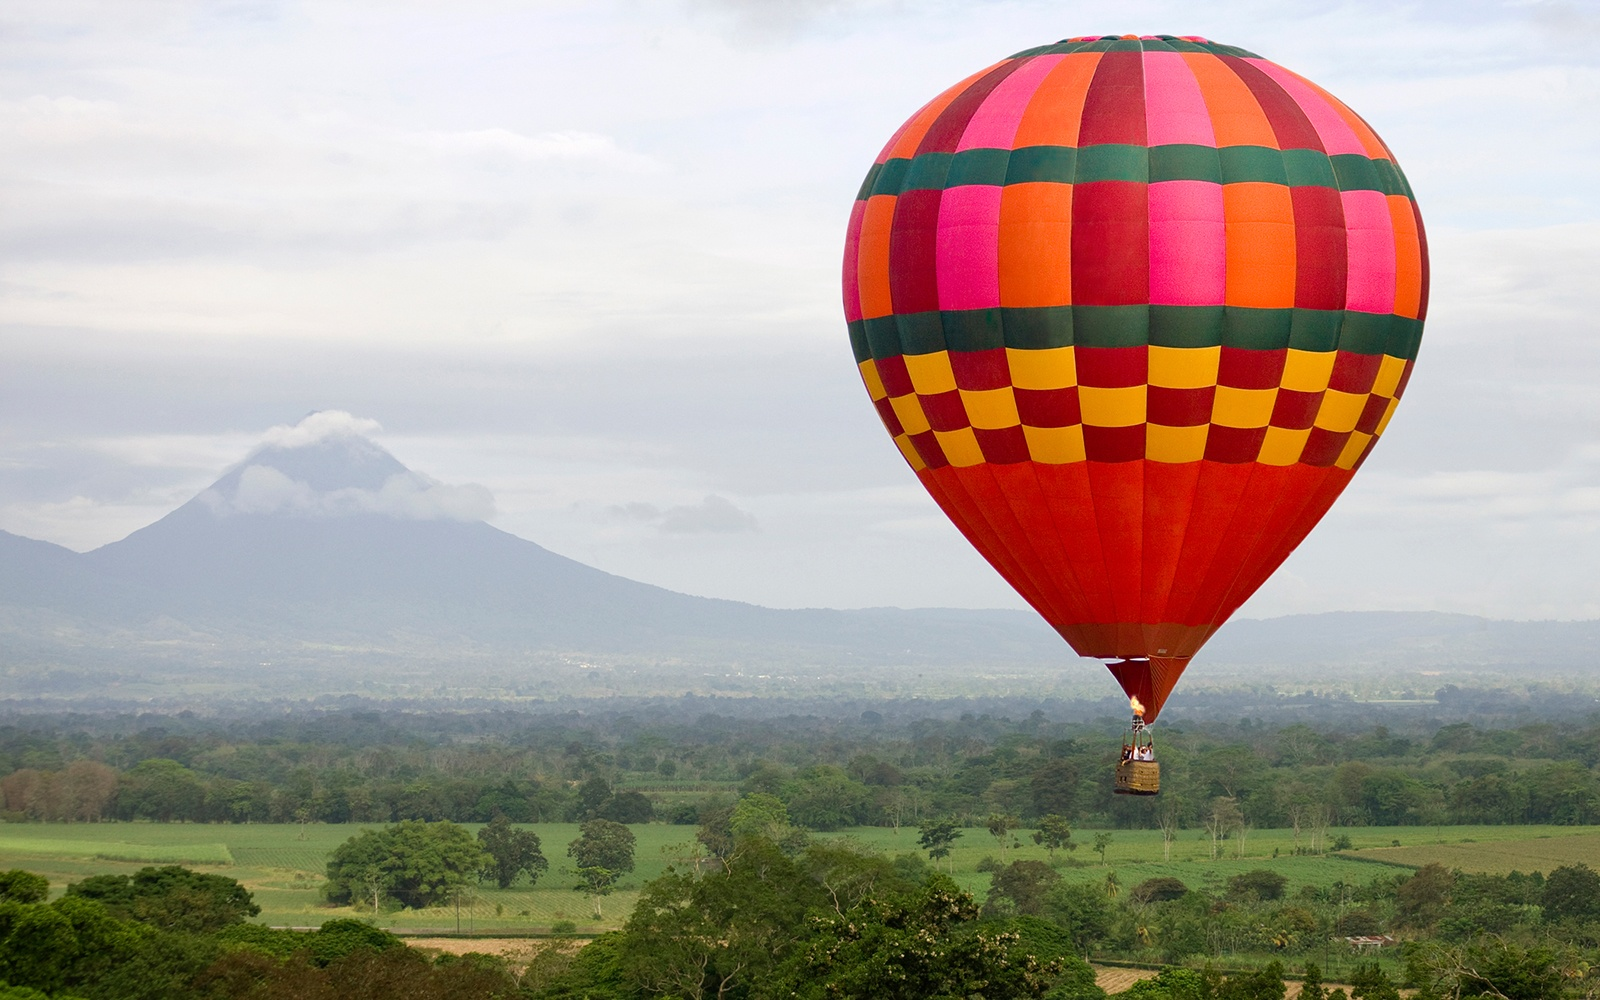 201404-a-hot-air-balloon-rides-costa-rica